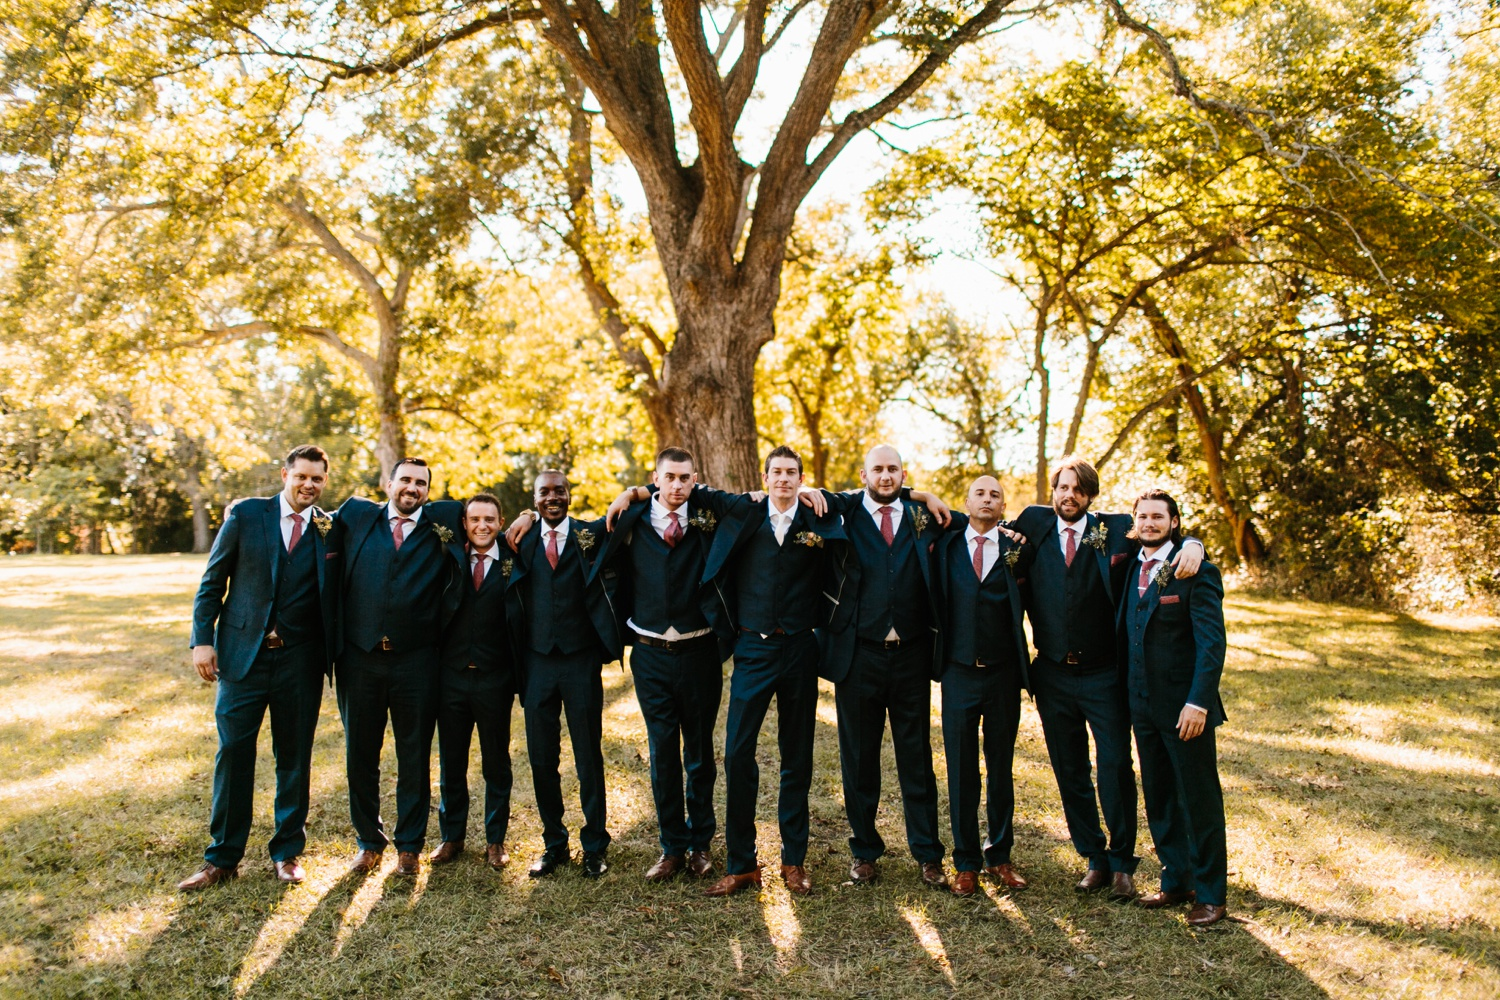 Erica + Henry | a bohemian inspired wedding at Chandlers Gardens in Salina, TX by North Texas Wedding Photographer Rachel Meagan Photography 047